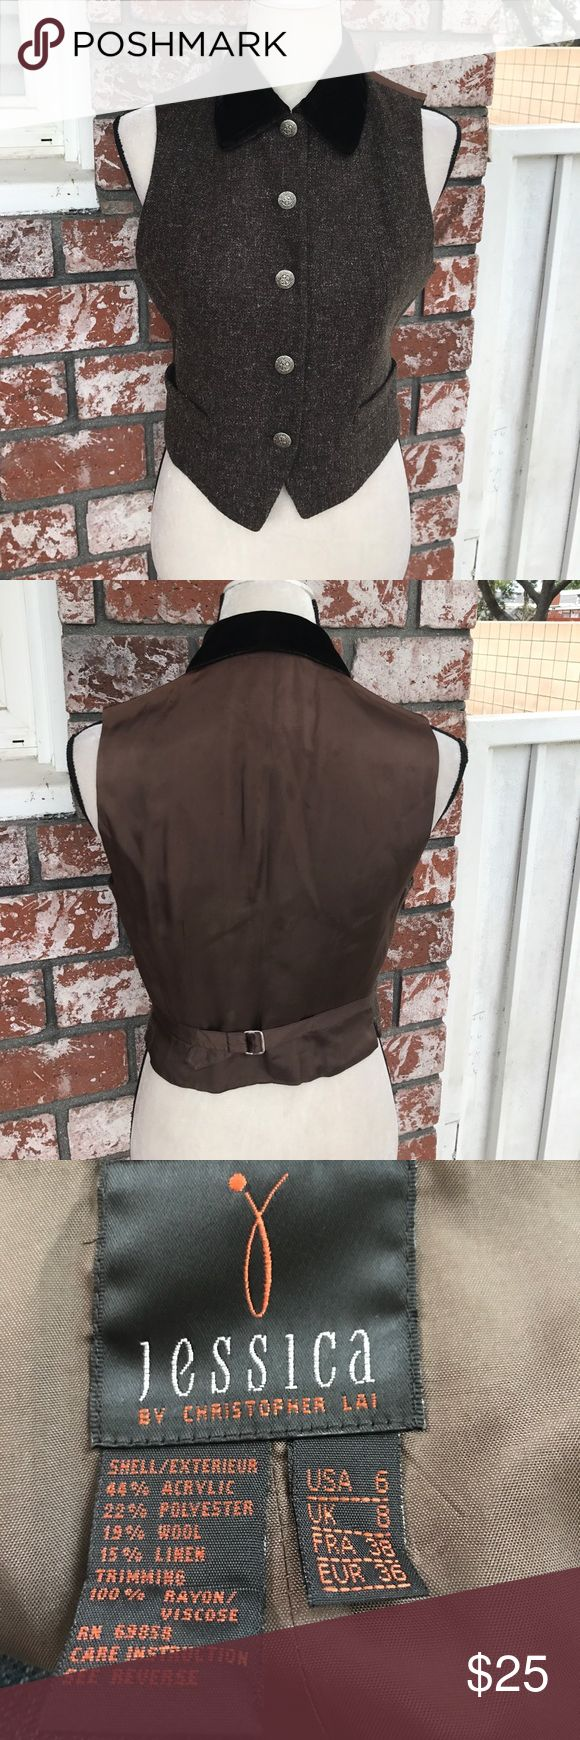 Adorable brown vest fully lined Fully lined brown vest beautiful buttons pockets in front and velour collar Jessica by Christopher Lai Jackets & Coats Vests